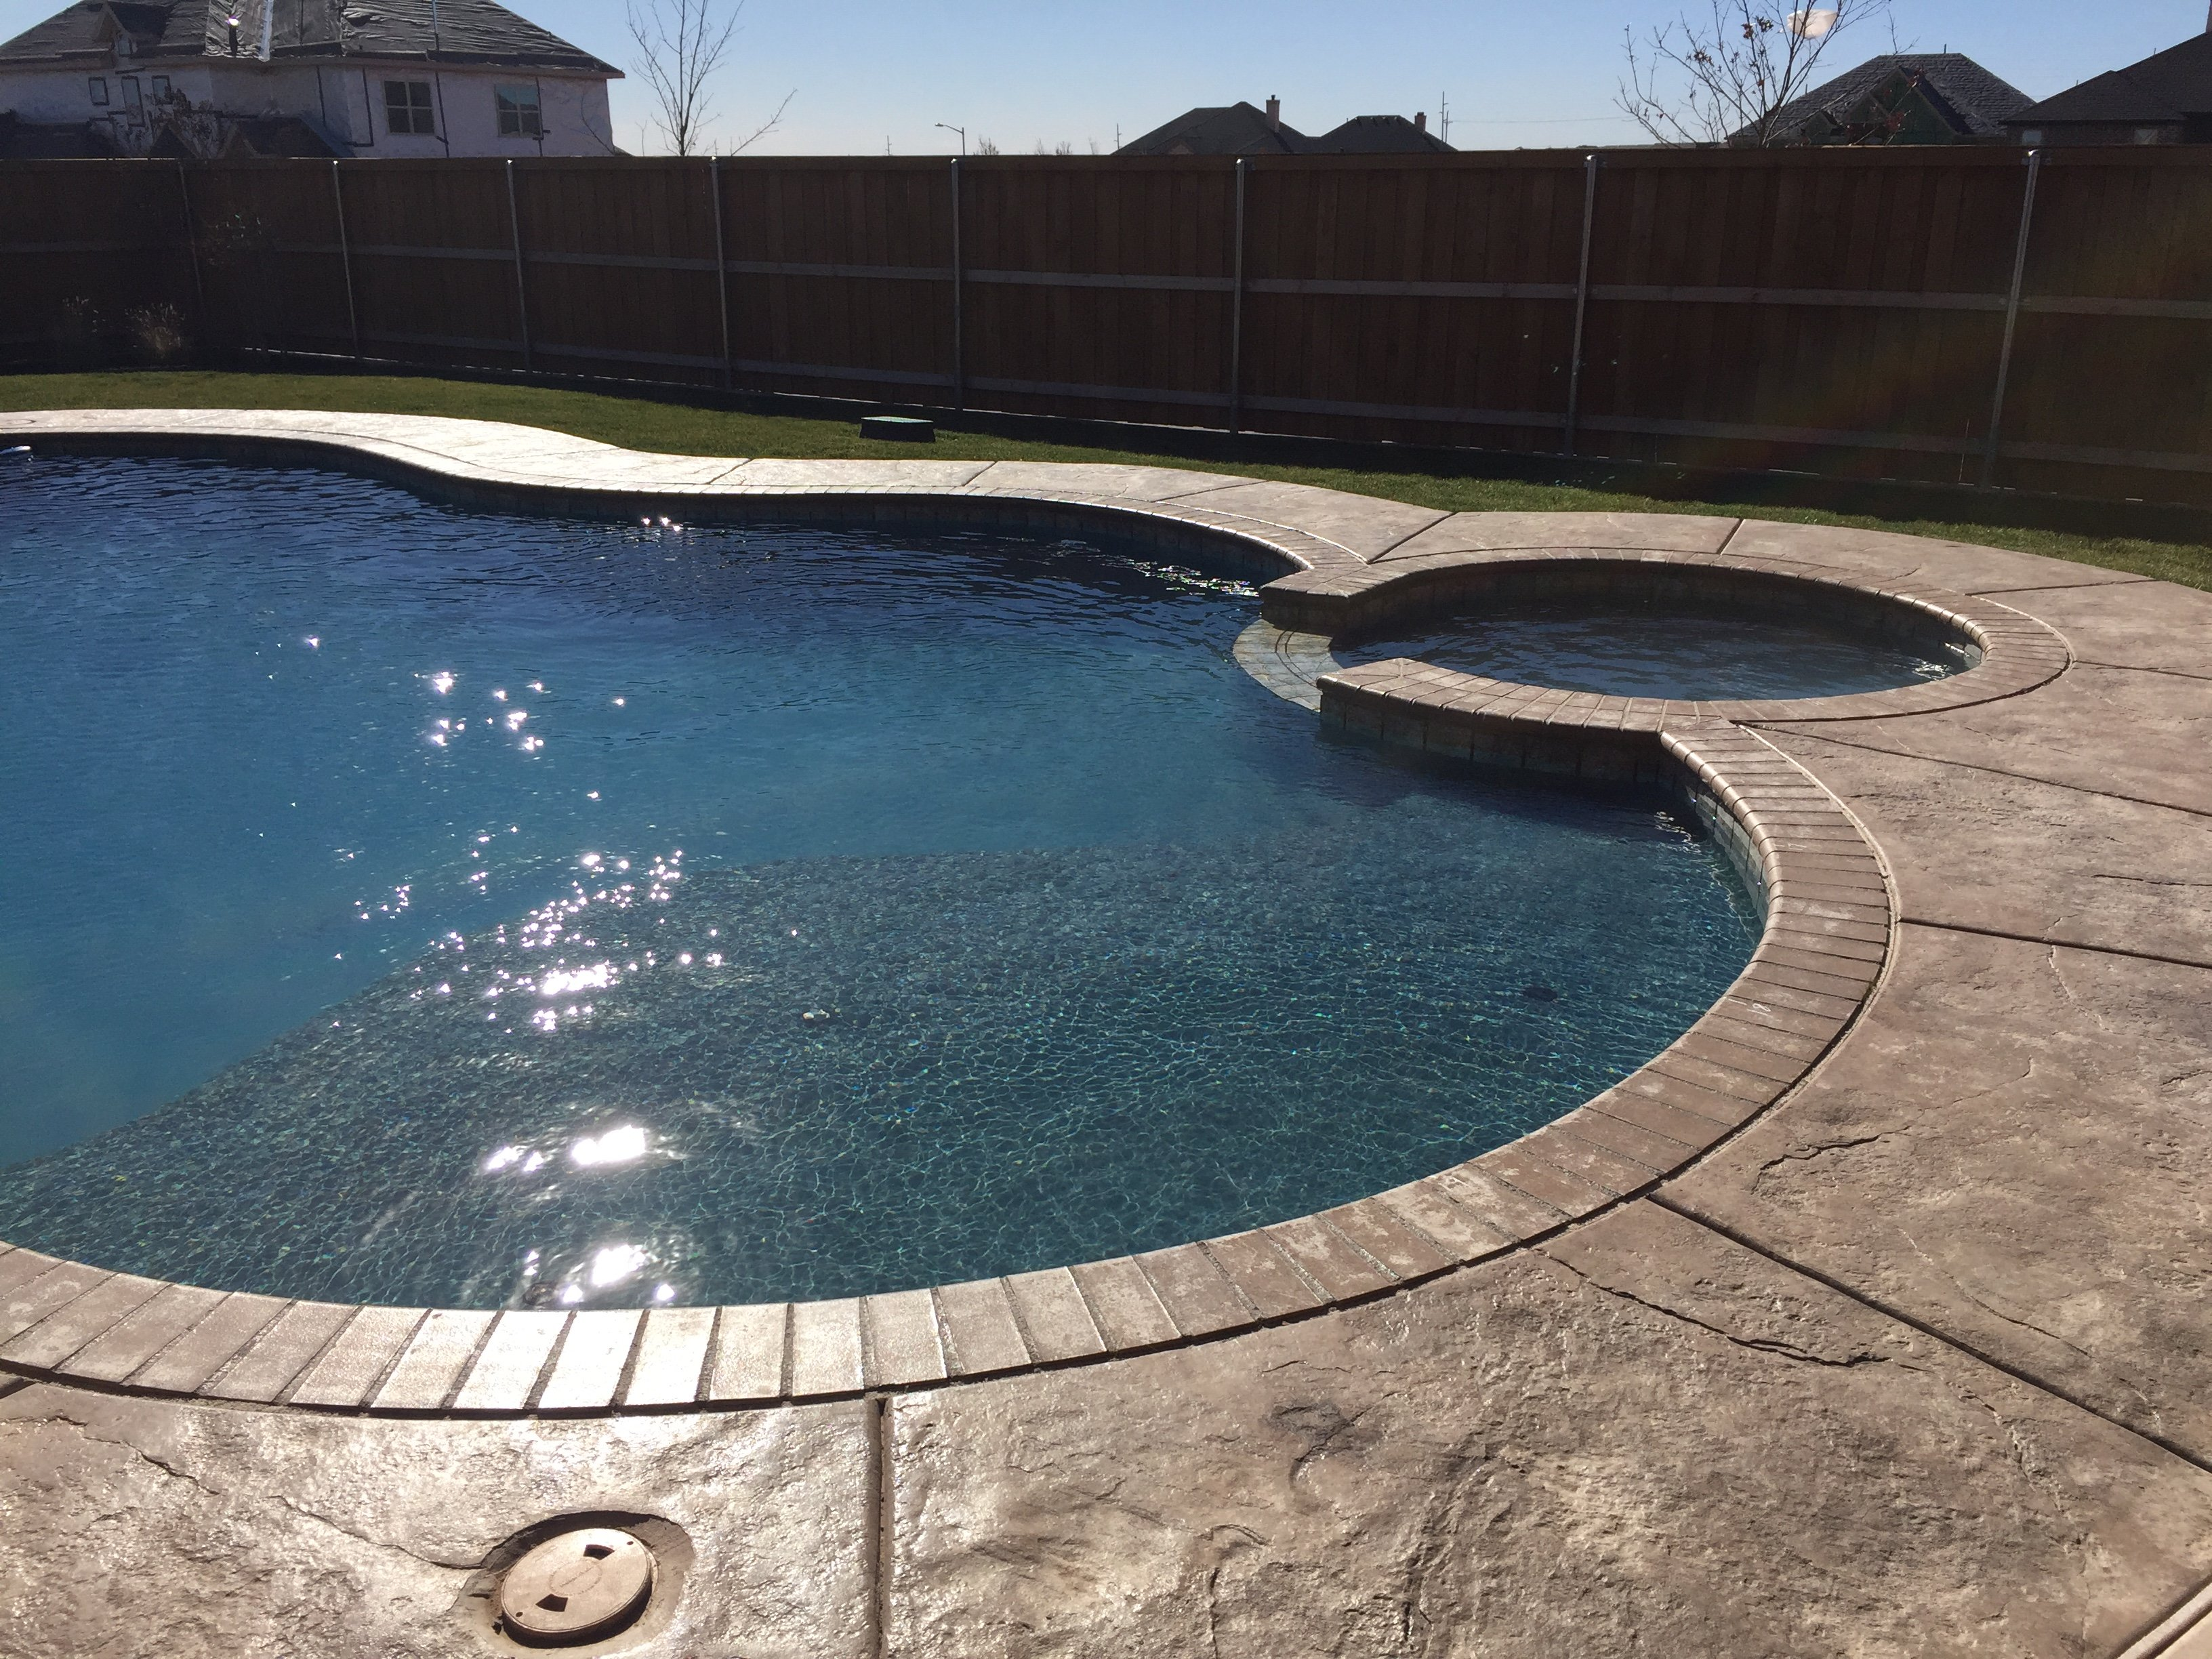 Out-Back Pool & Spa | Pool Installation in Canyon, TX - Out-Back Pool & Spa